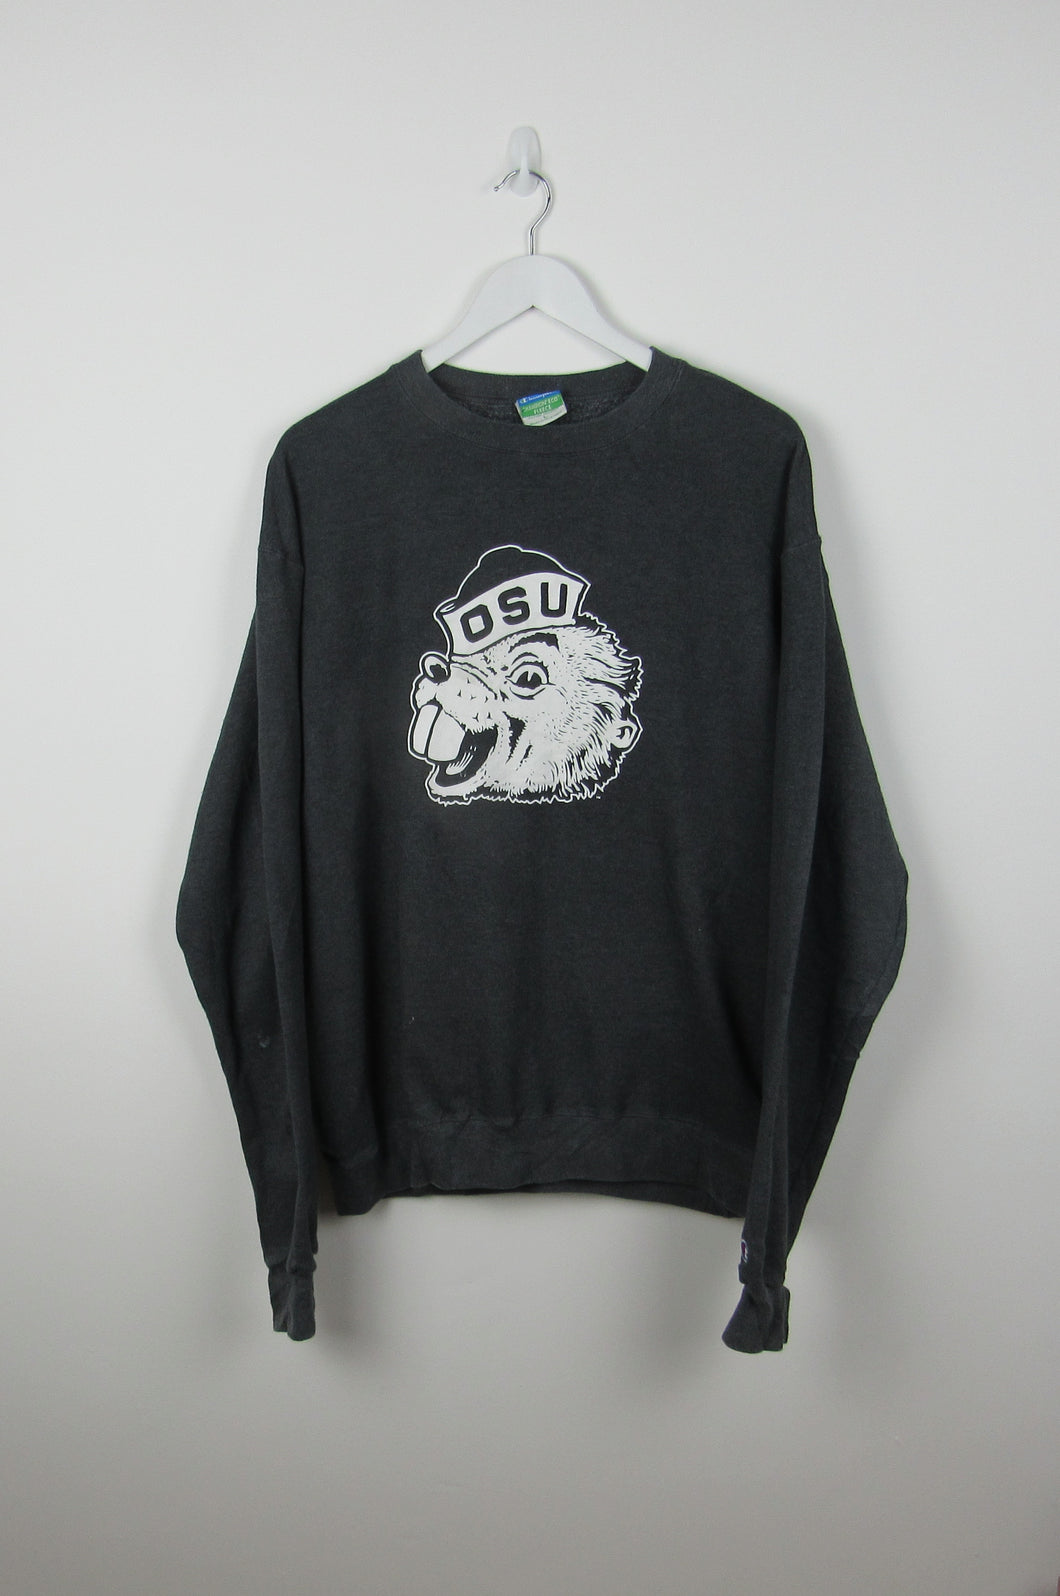 USA Crew Sweater